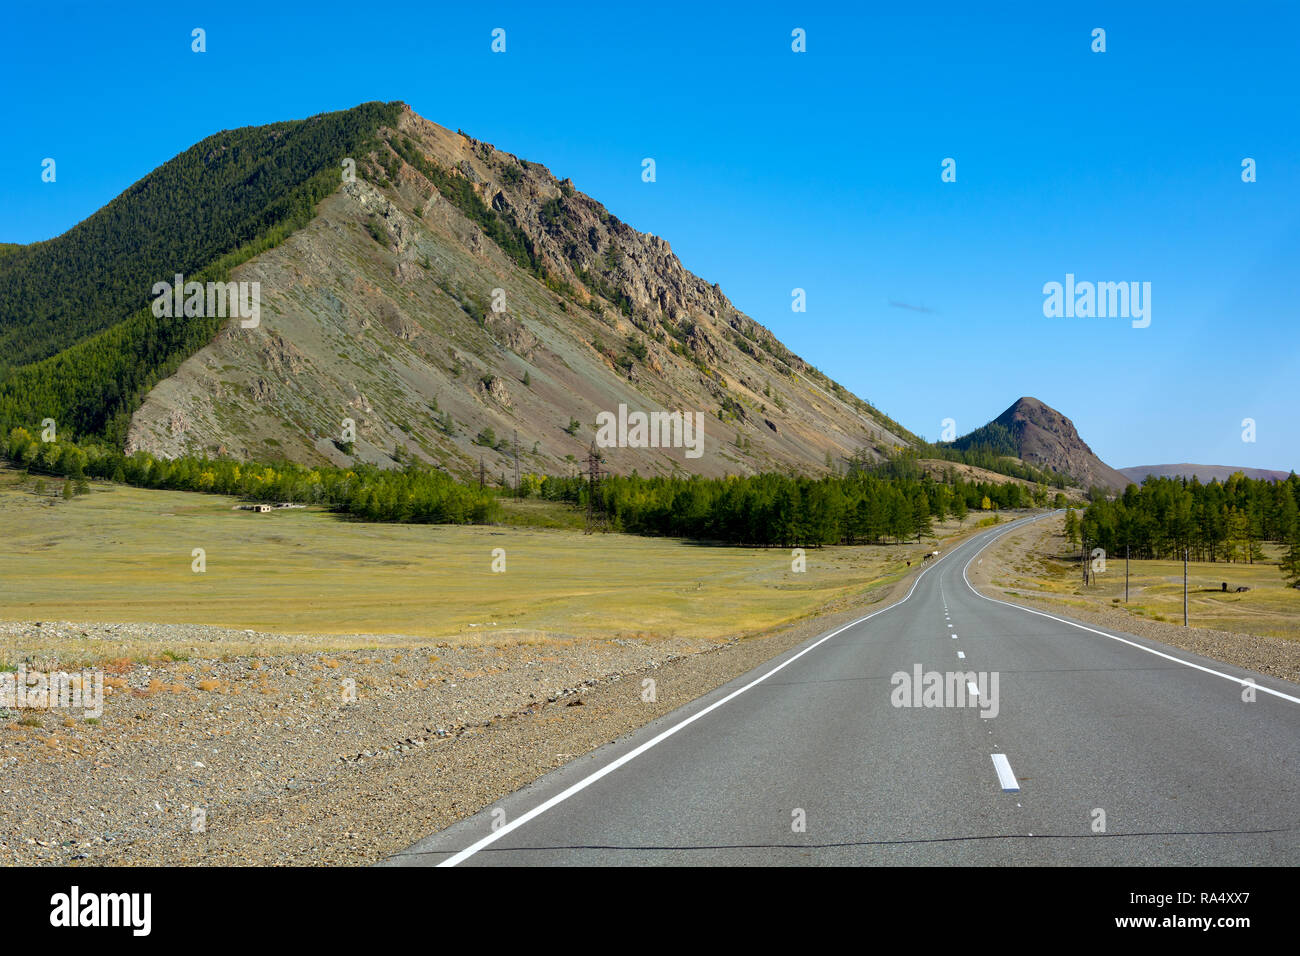 Picturesque mountain tops of pyramidal shape along the Chuya highway, Altai Republic - Stock Image